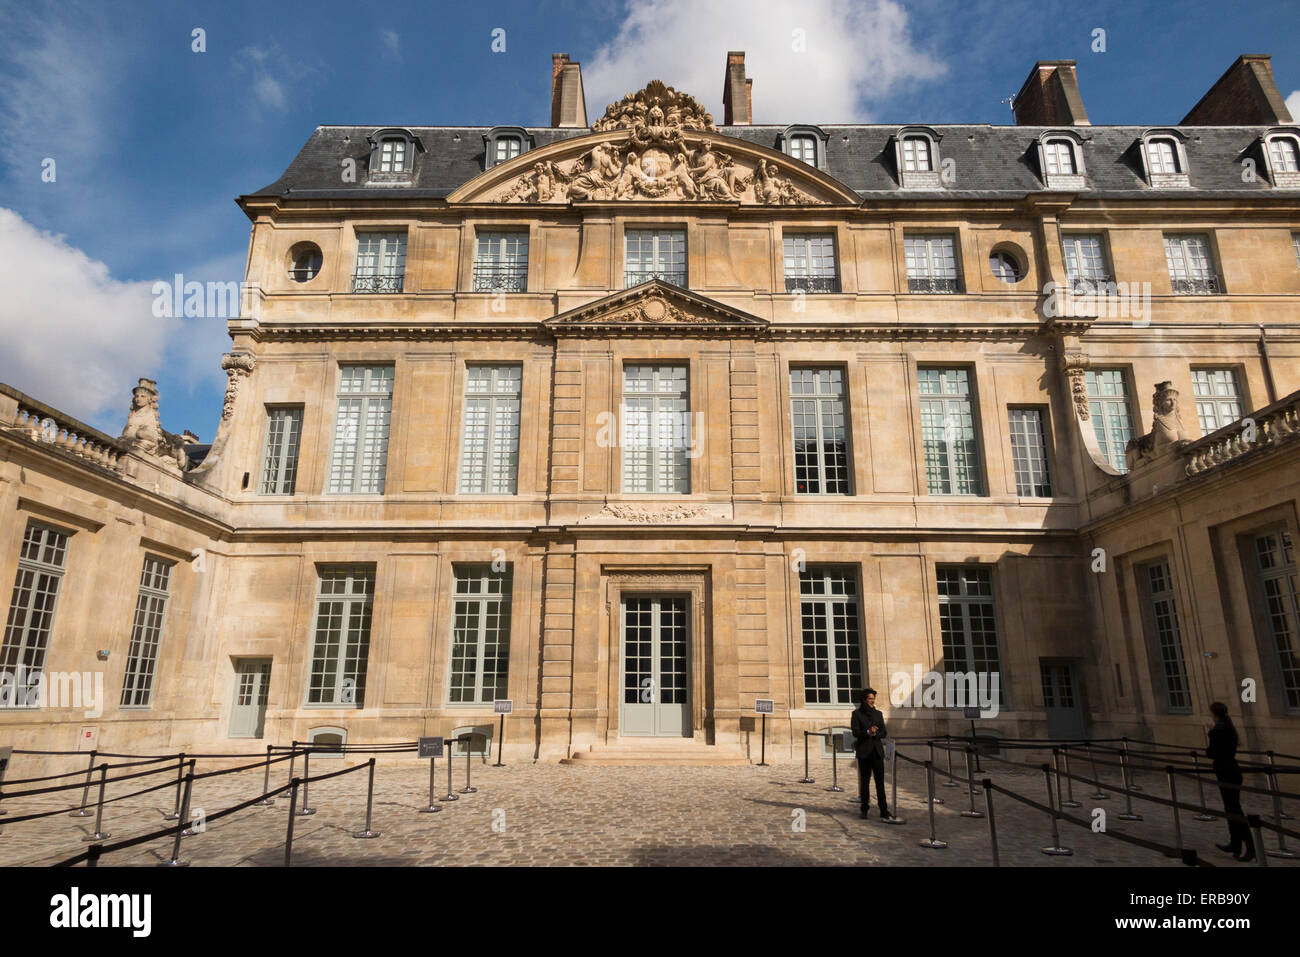 Exterior outside front facade of mus e national picasso paris museum stock photo royalty free - Musee picasso paris horaires ...